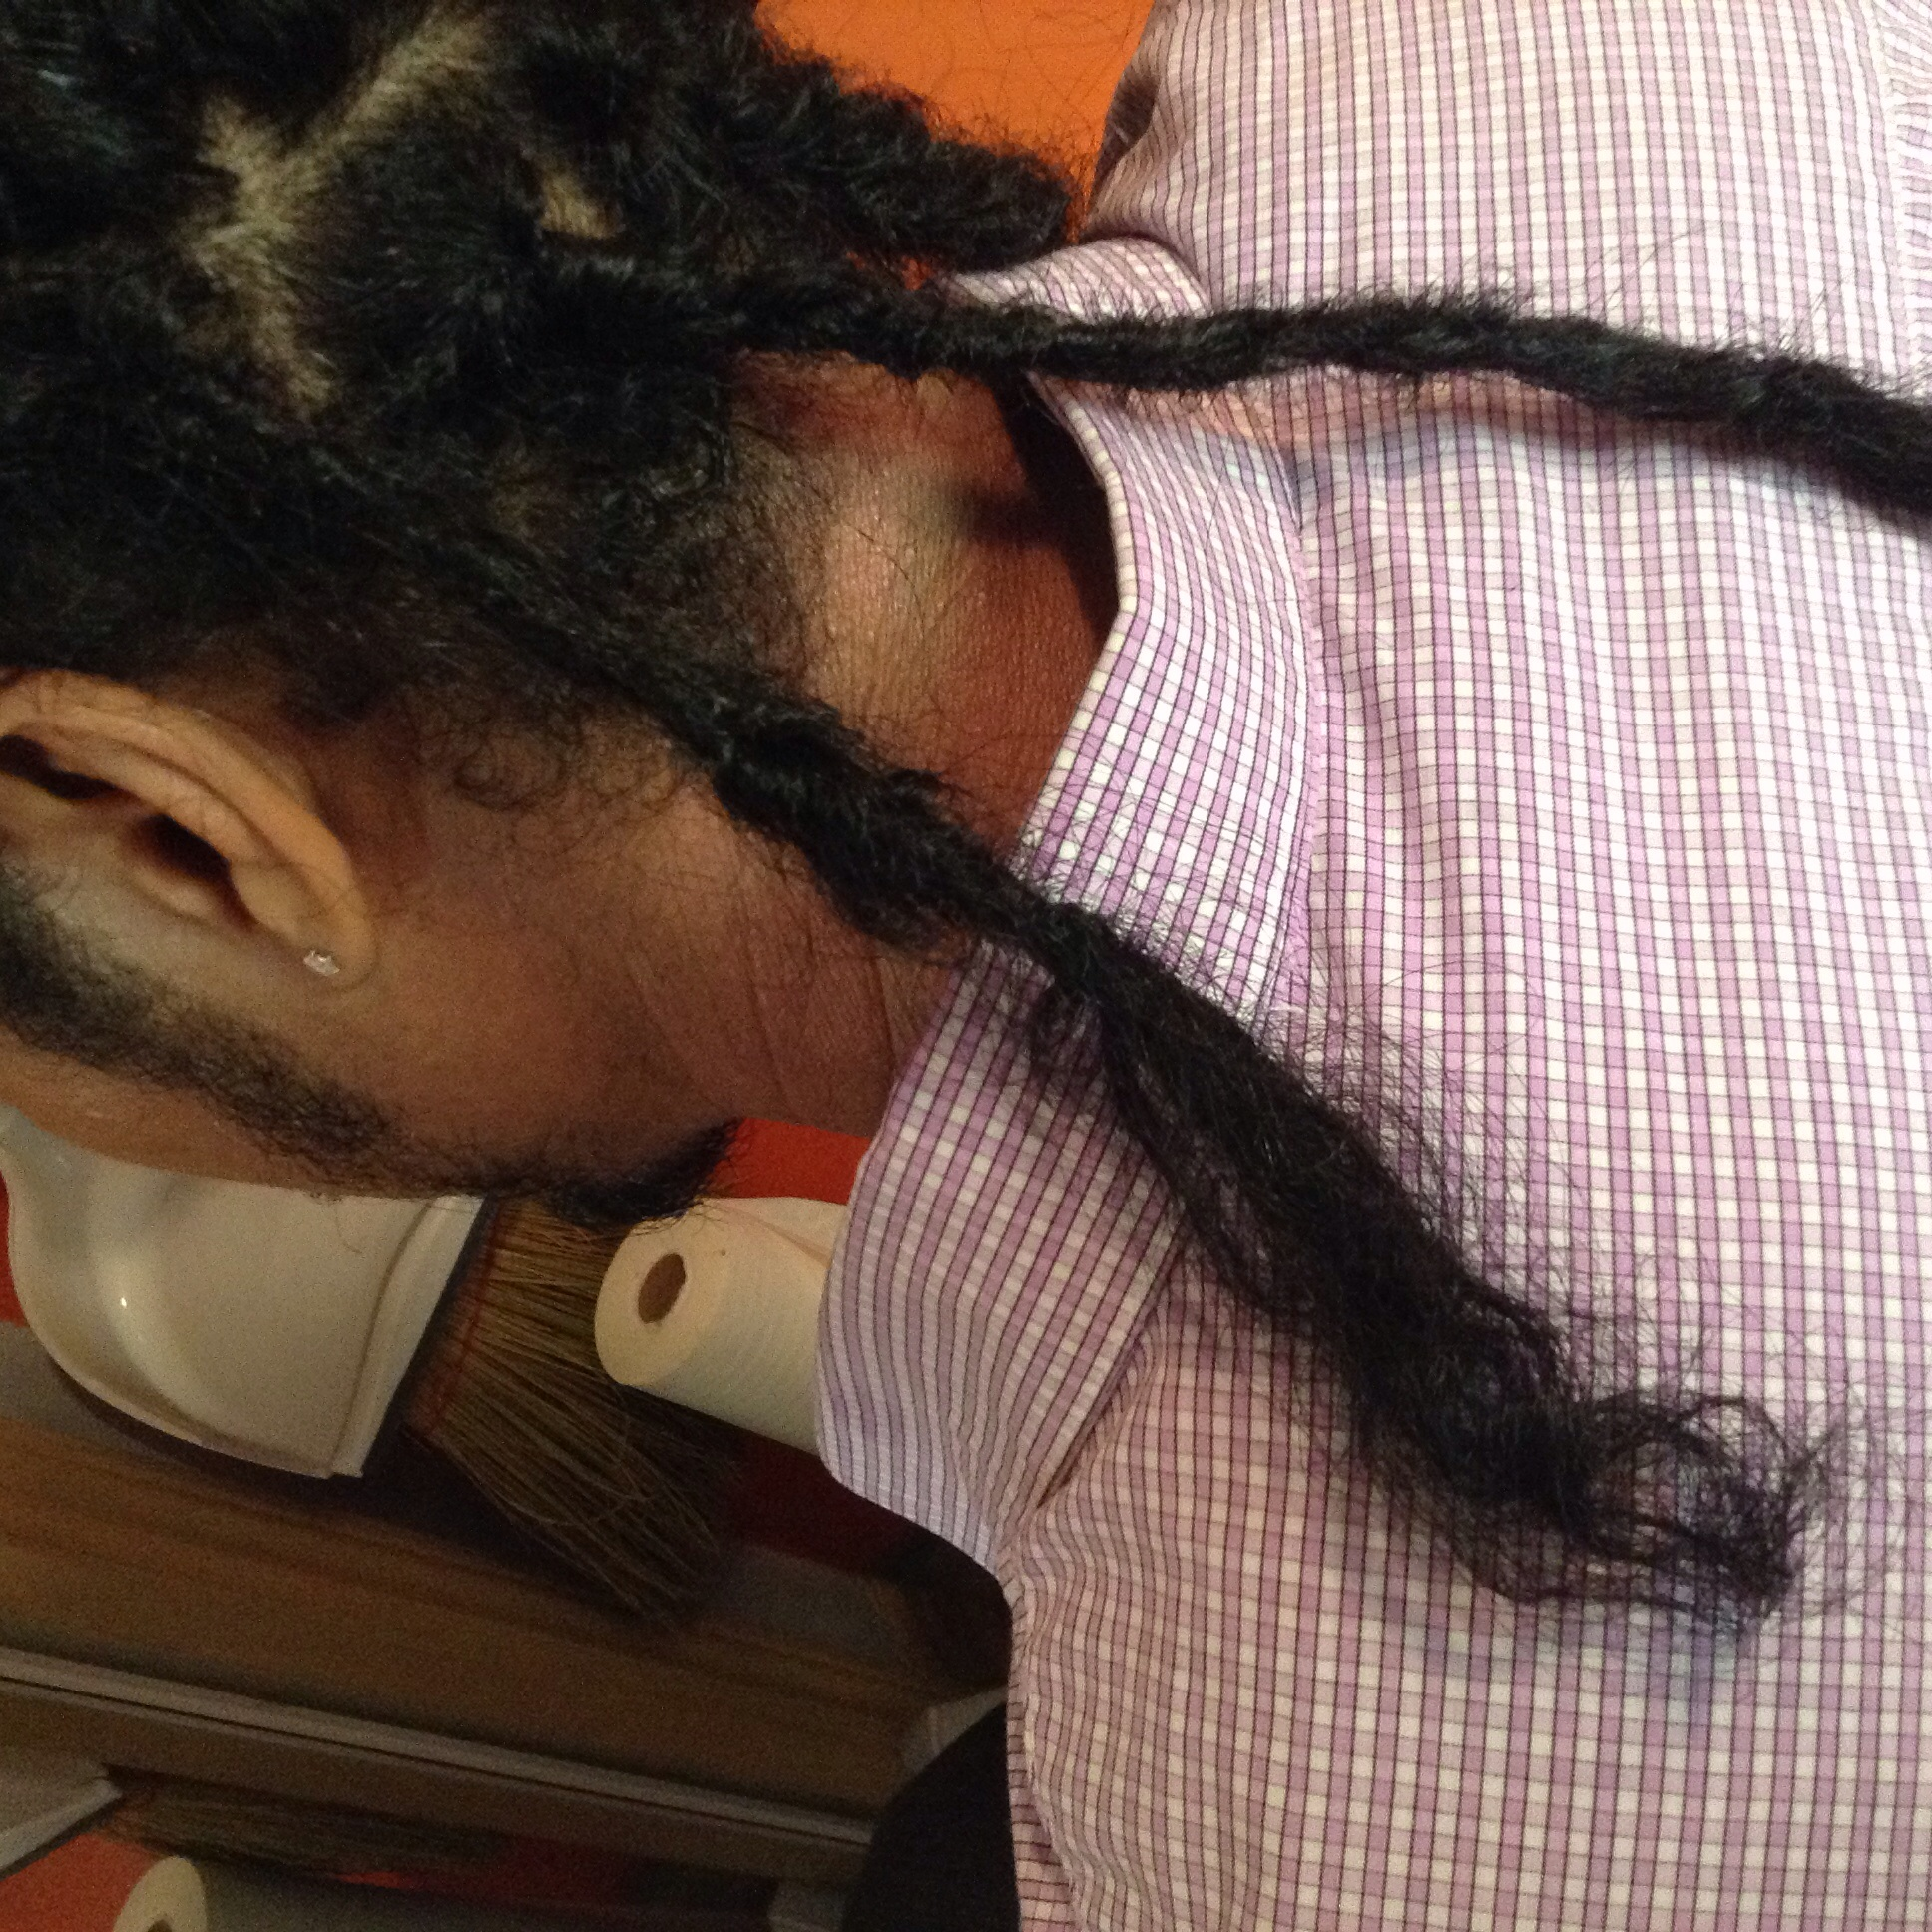 Loc with loops toward the root & loose hairs at the end